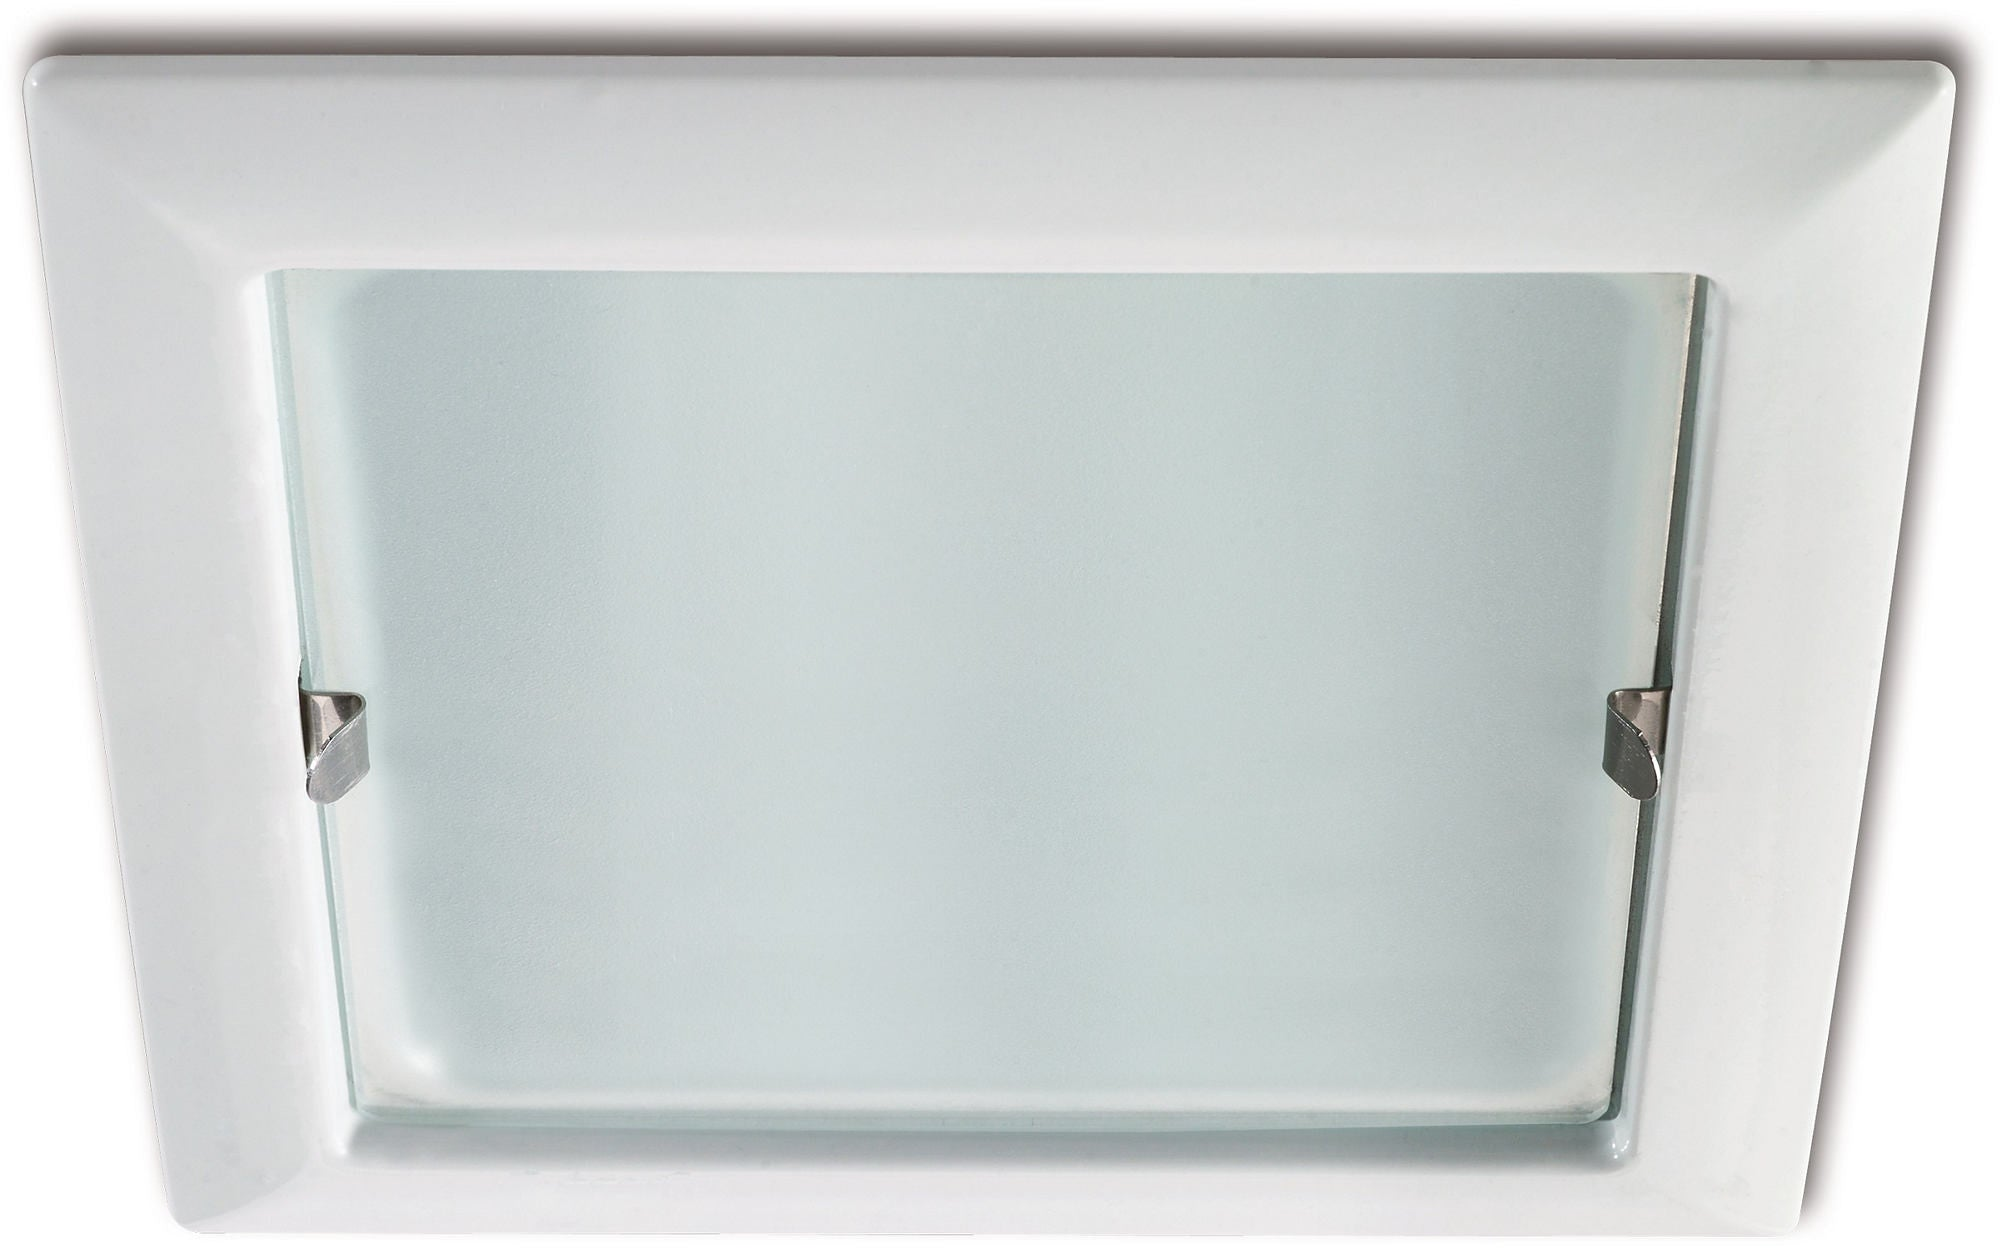 Philips Recessed Spot Light (2x14W)